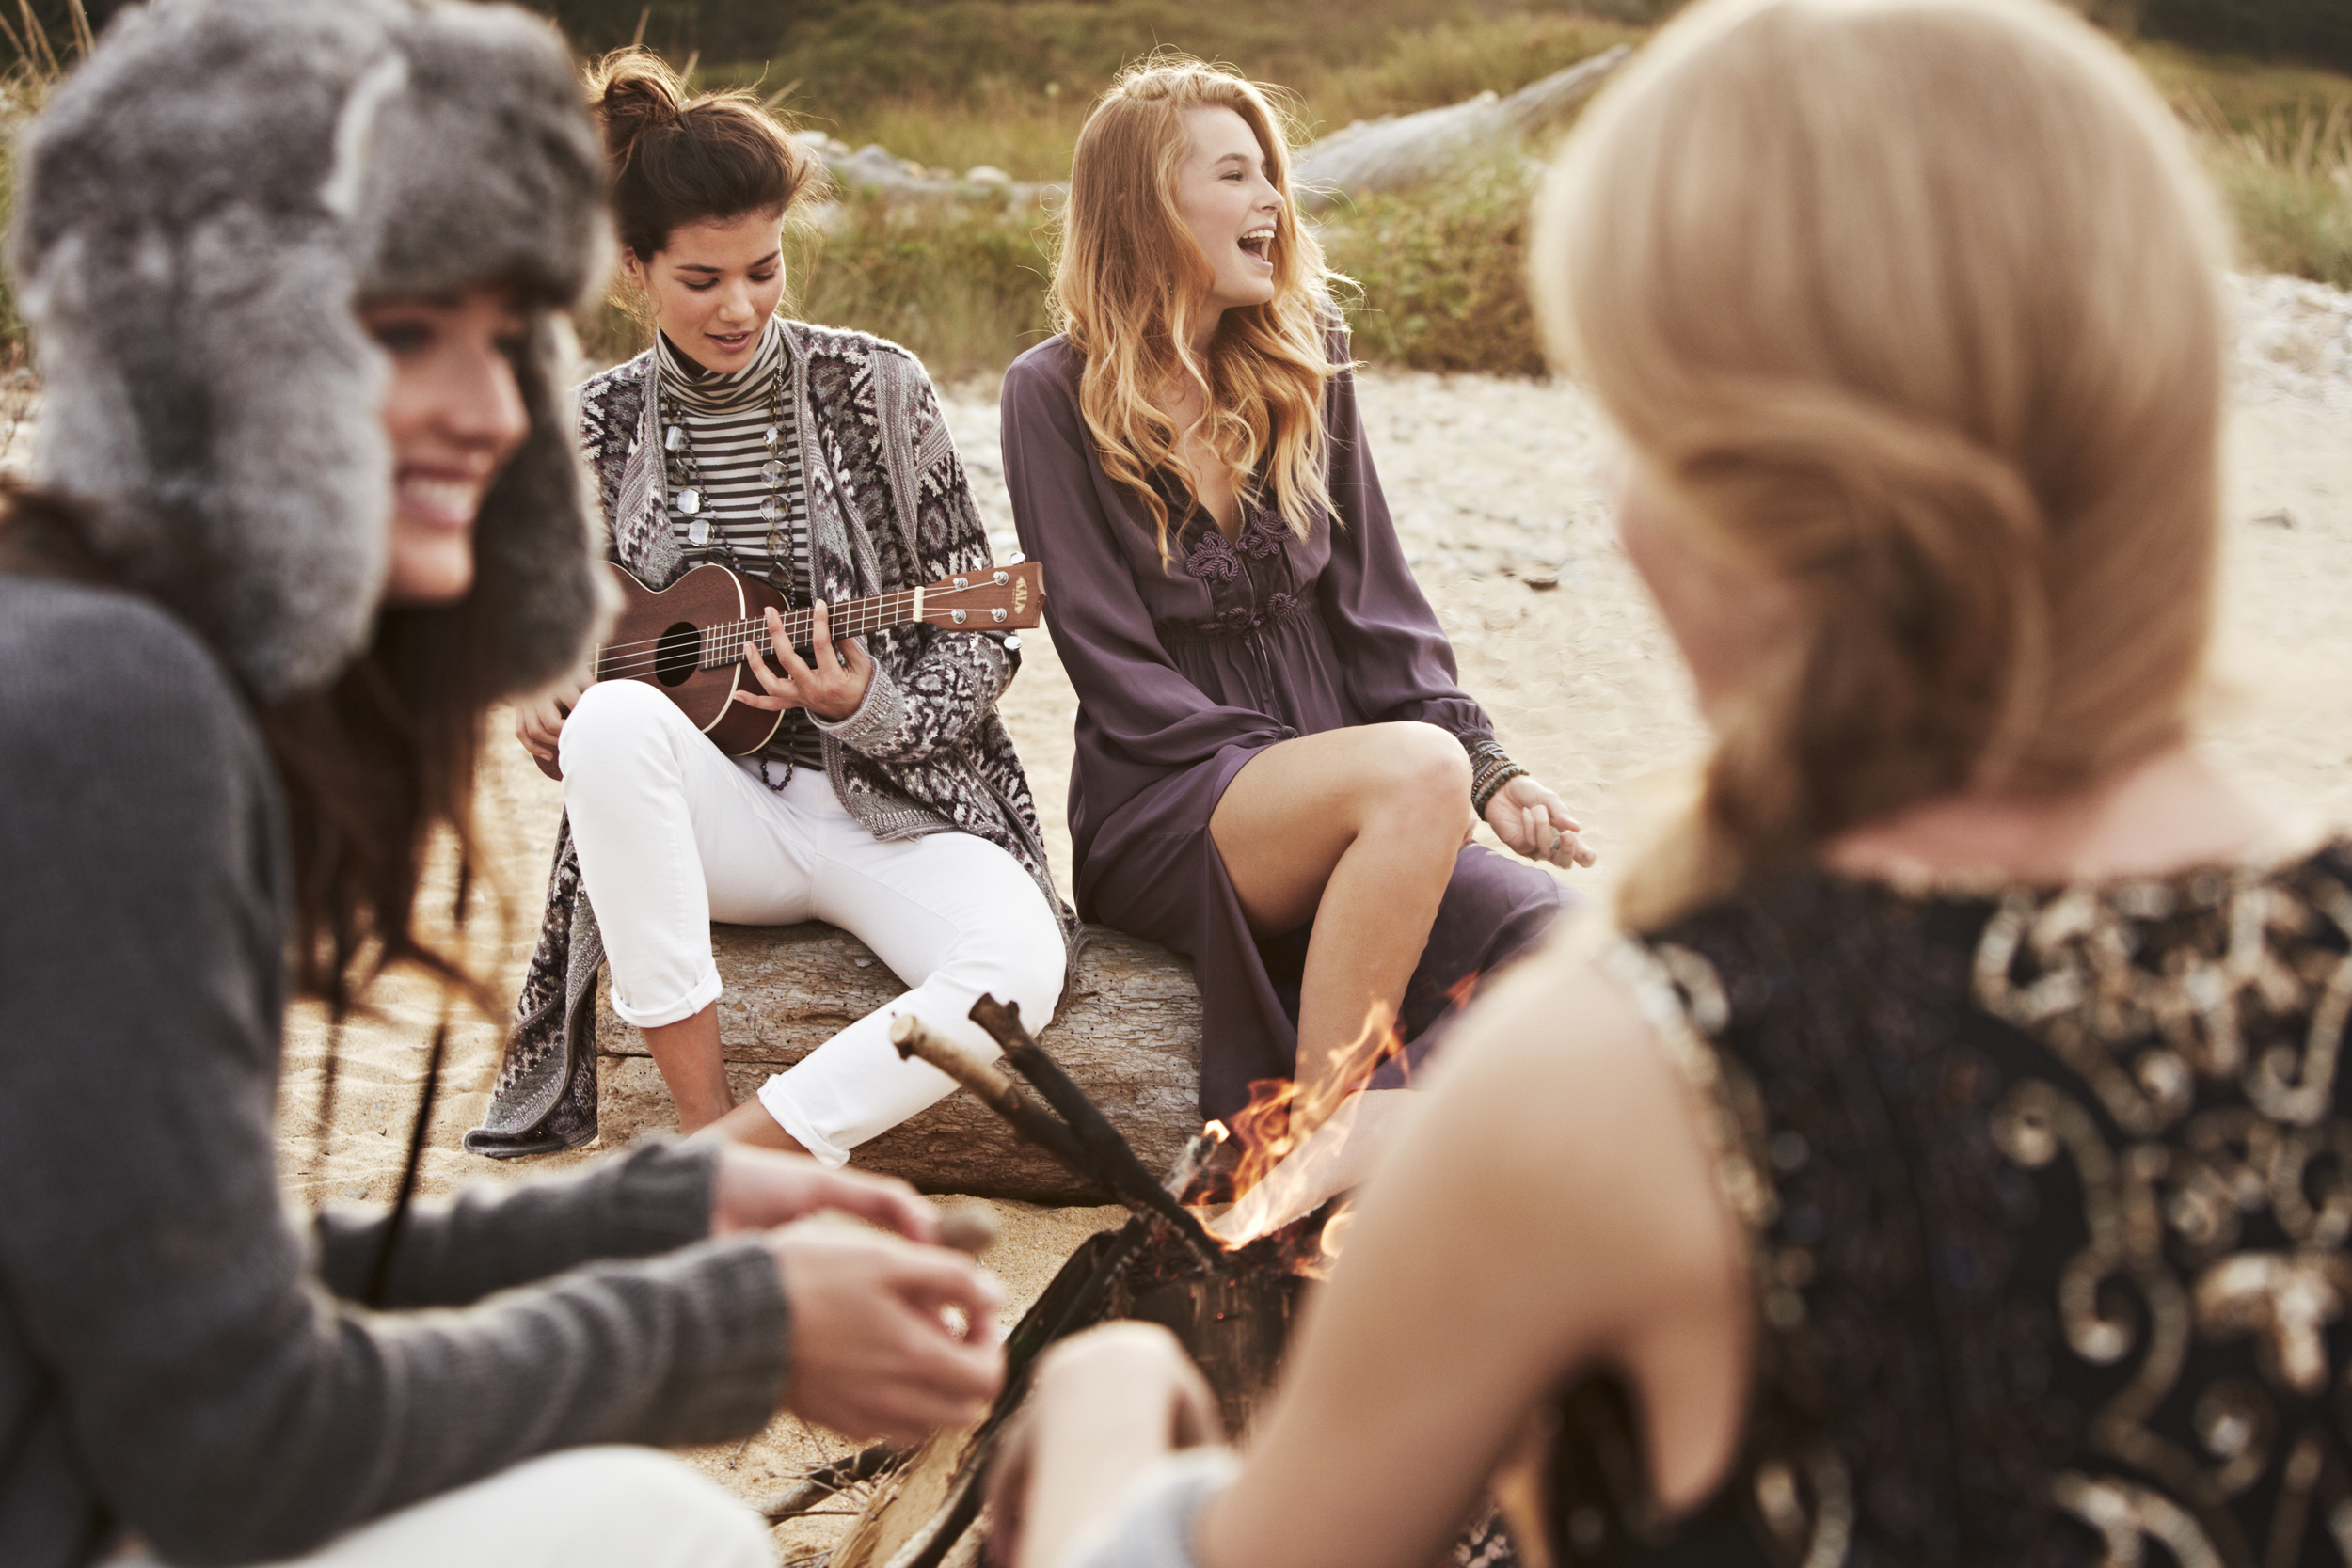 photo shoot for calypso st barth in the hamptons at a bonfire